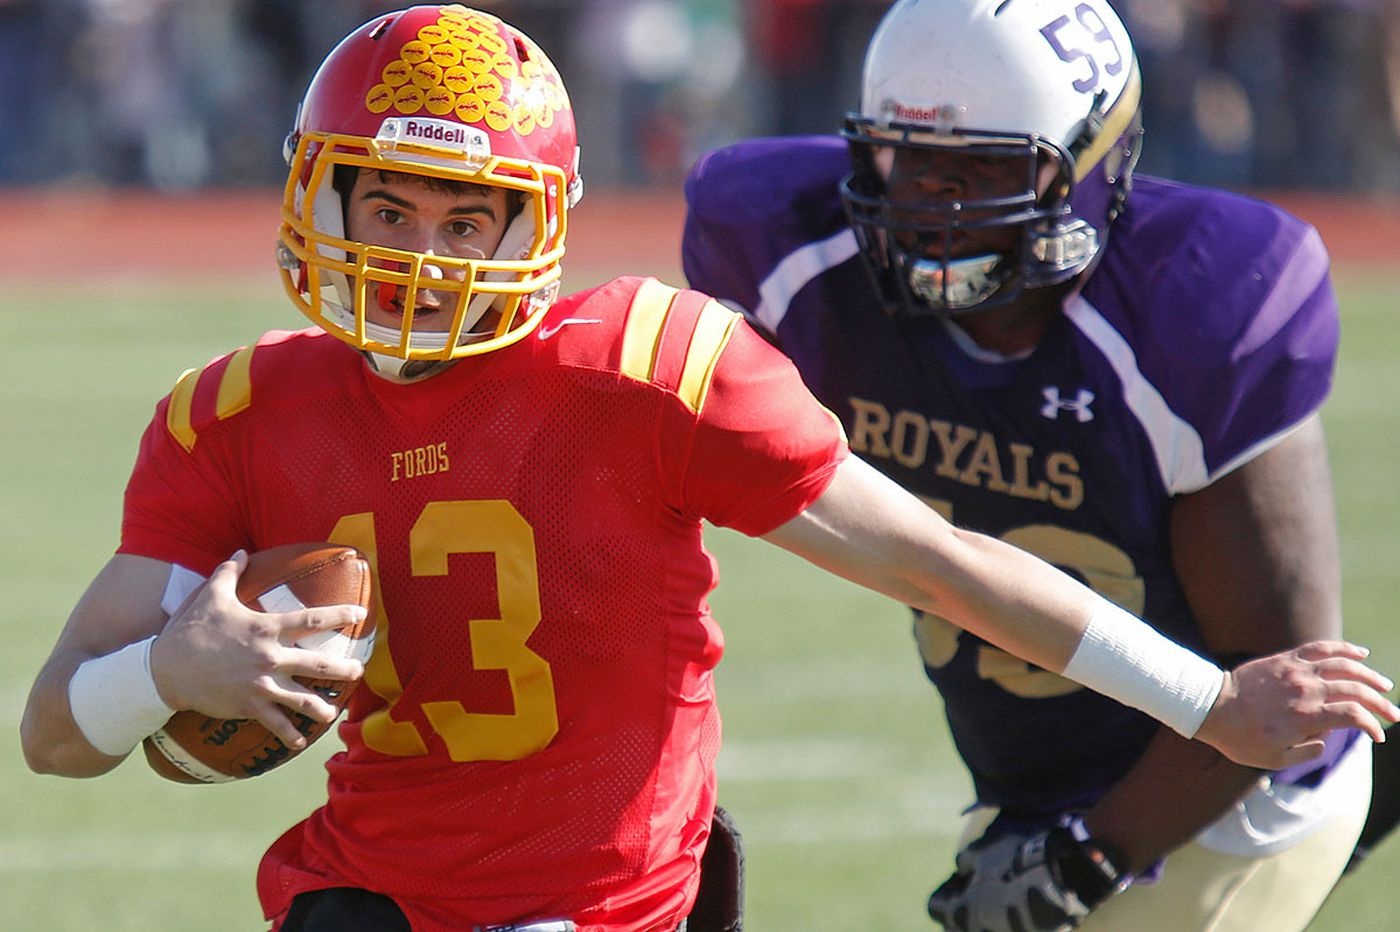 Haverford outlasts Upper Darby, 49-42, for Central League crown